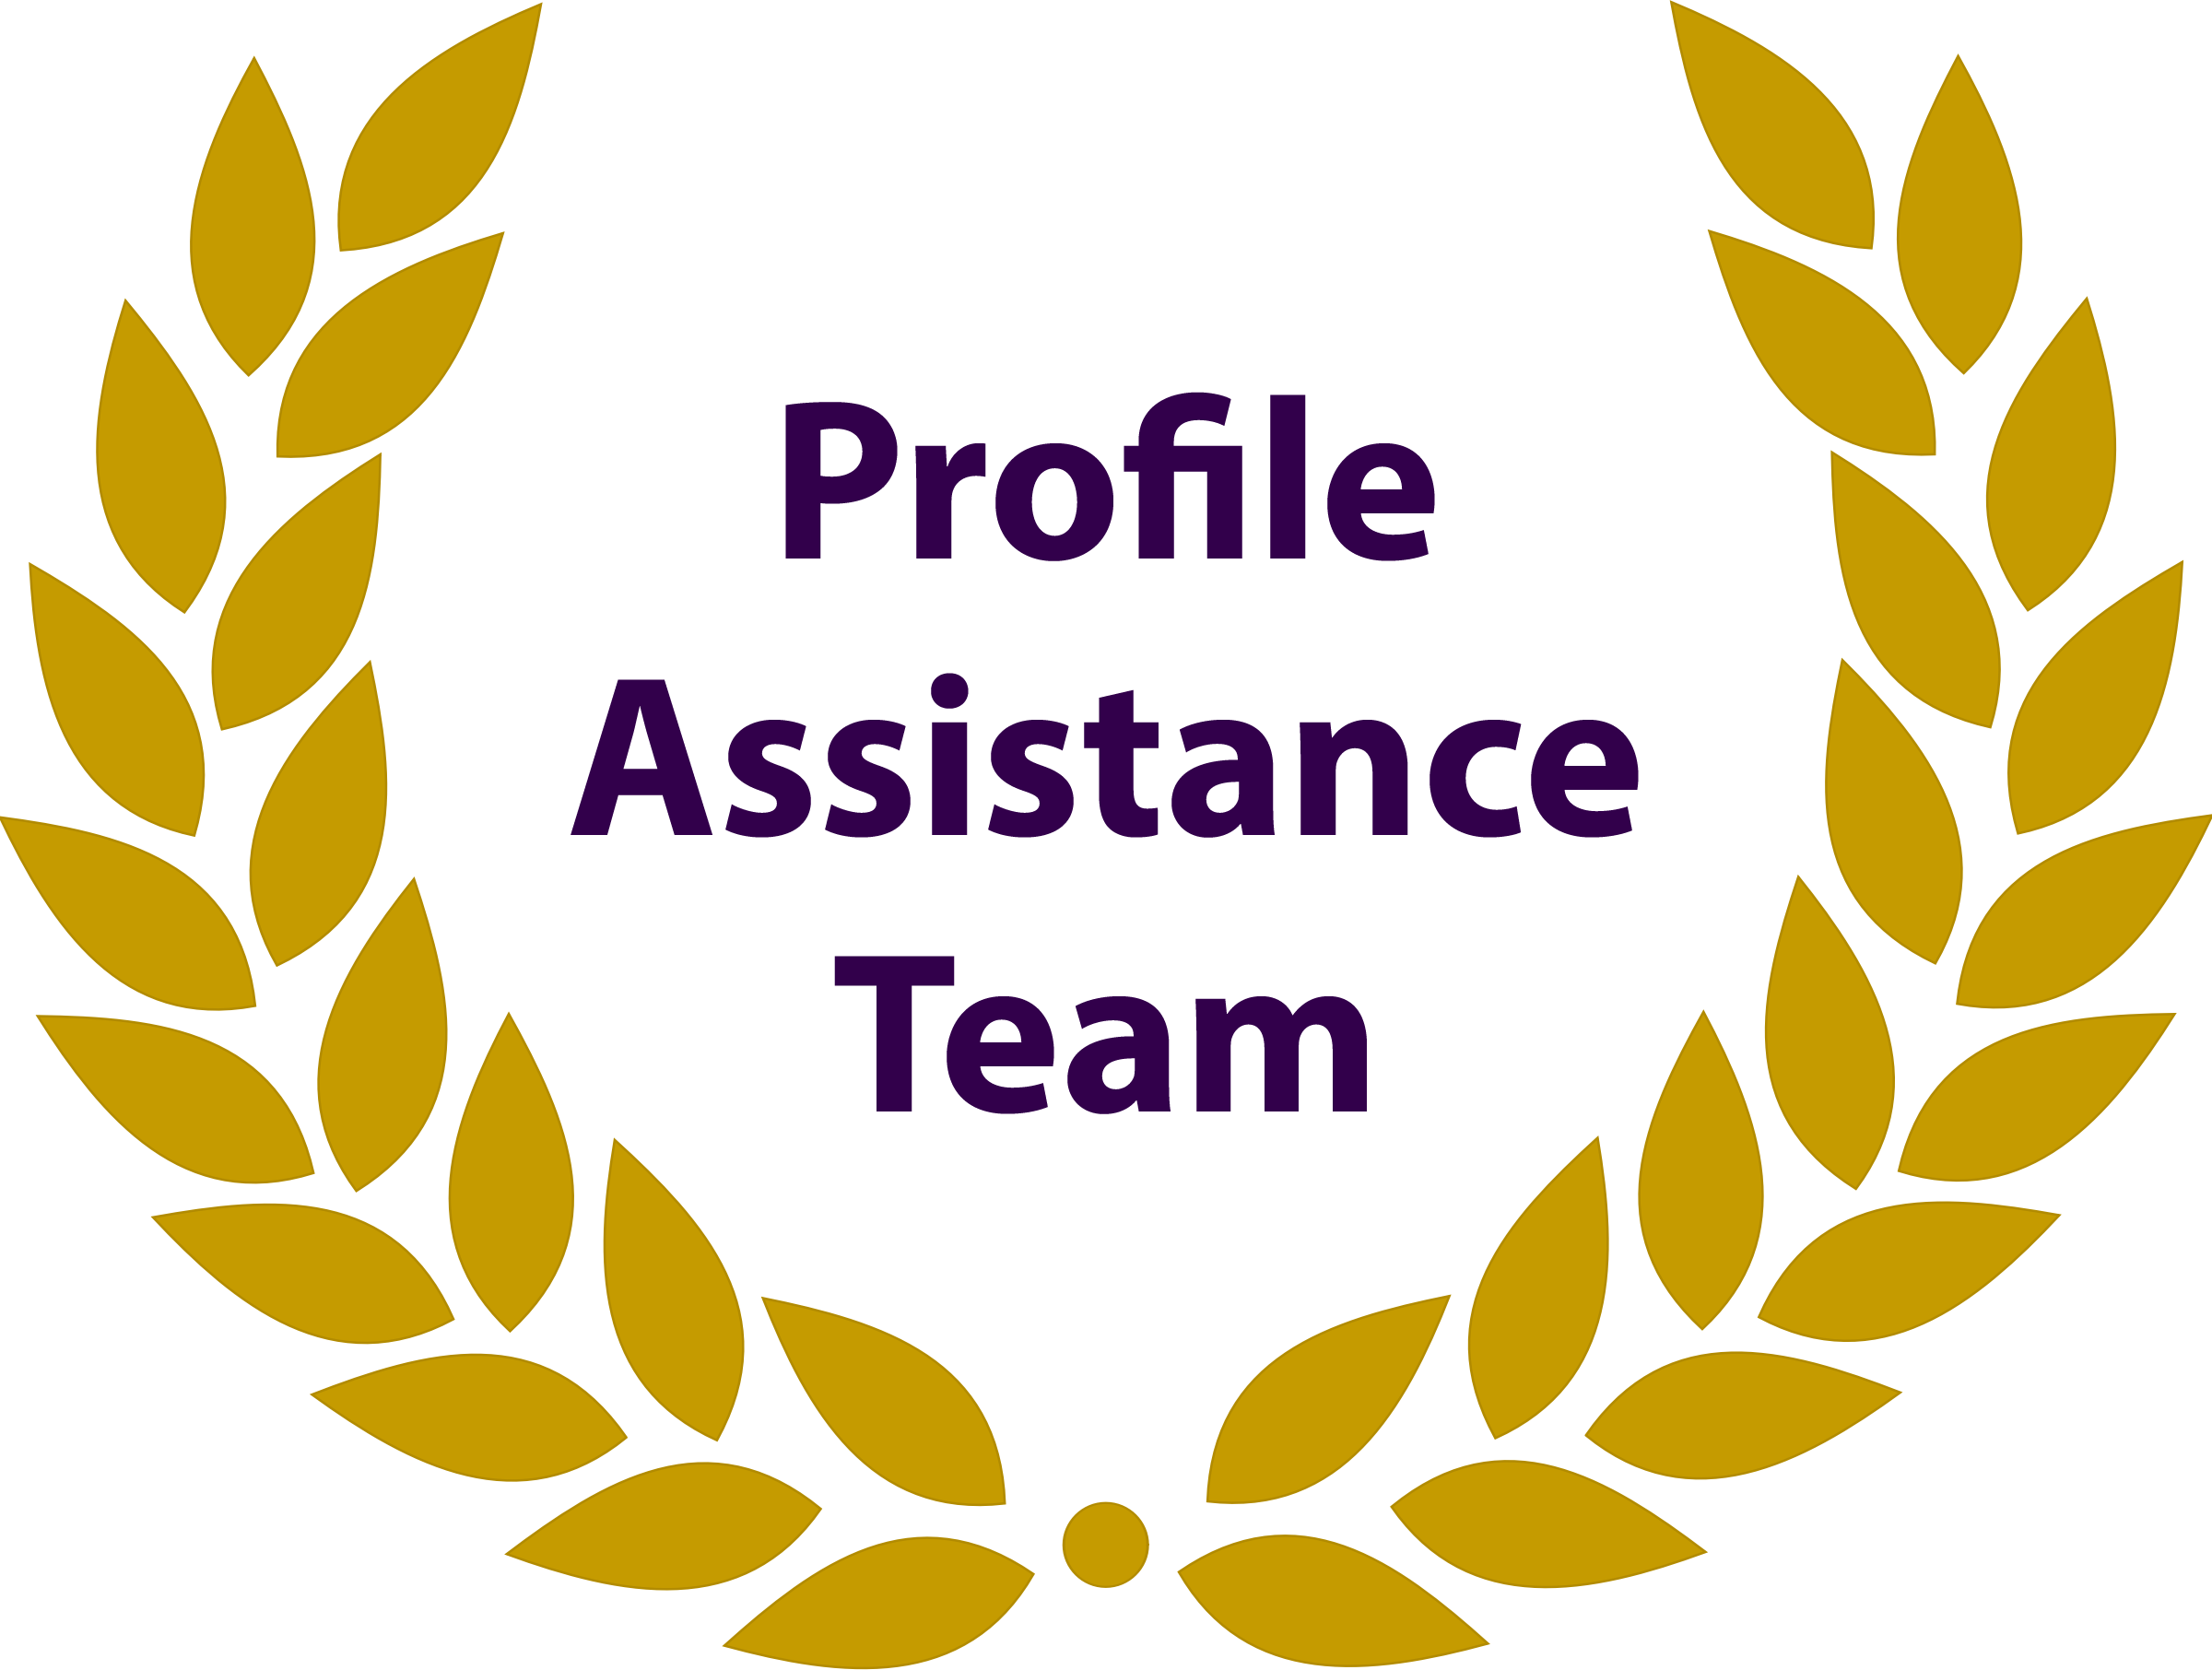 NTWS Volunteer Profile Assistance Team